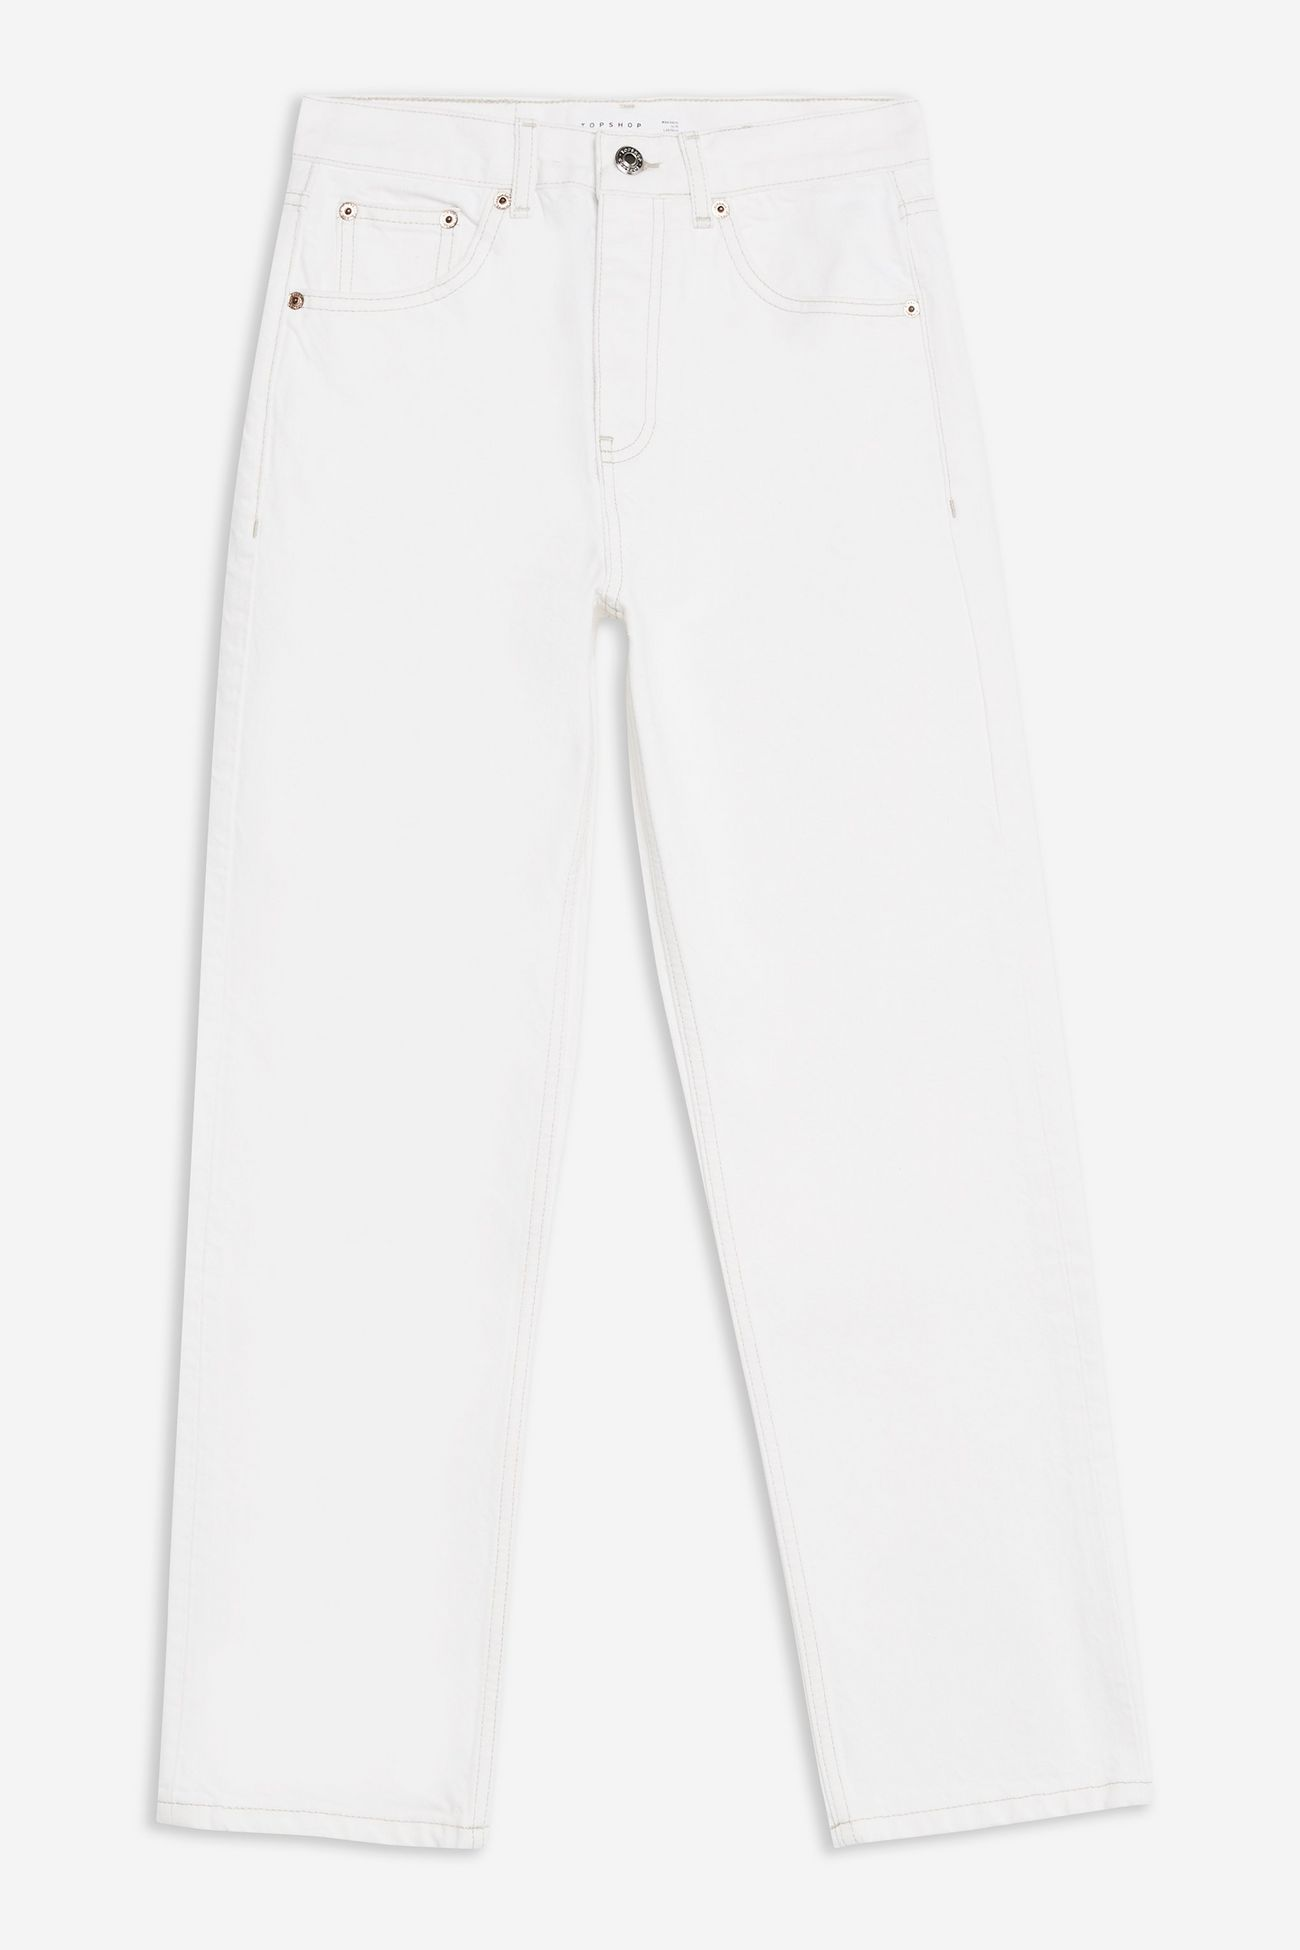 Off White Editor Jeans